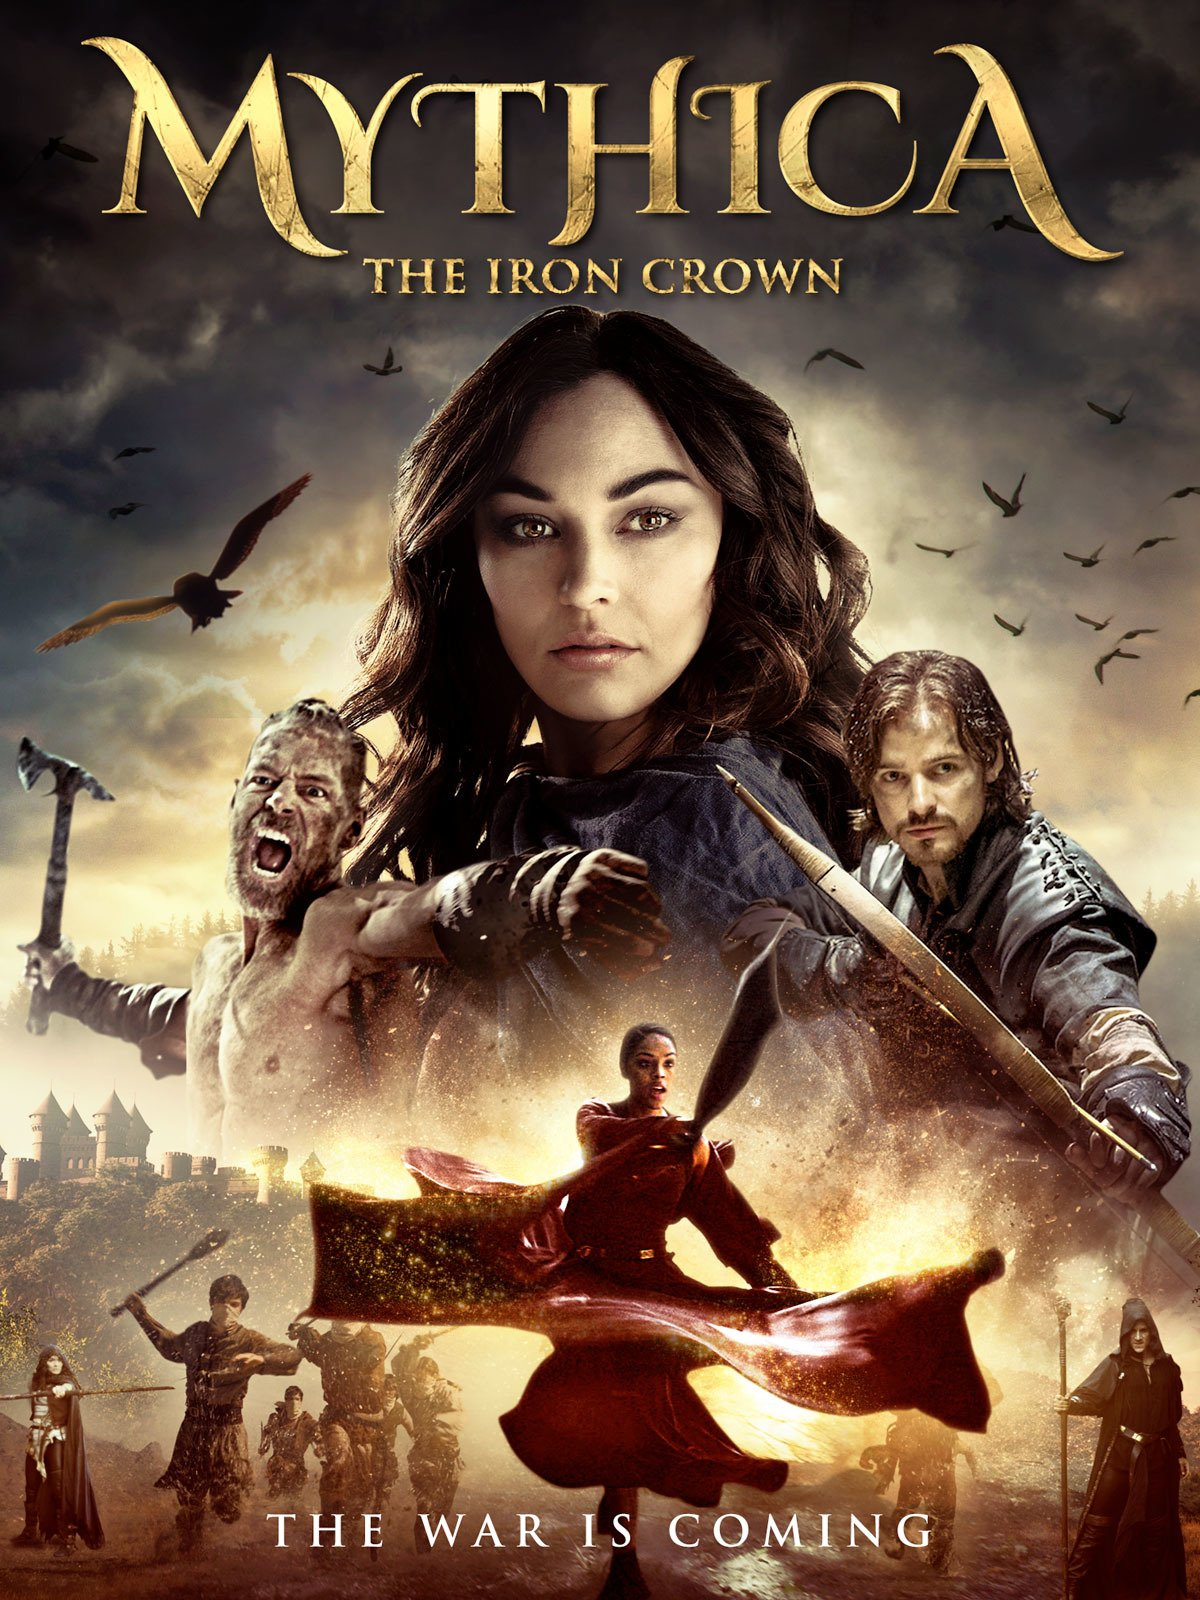 Mythica: The Iron Crown